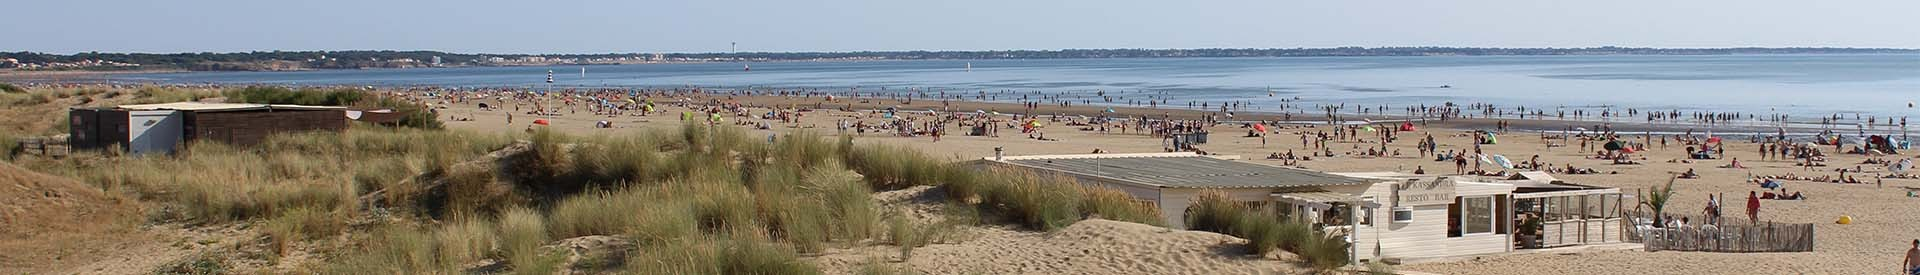 st-brevin-plage-109